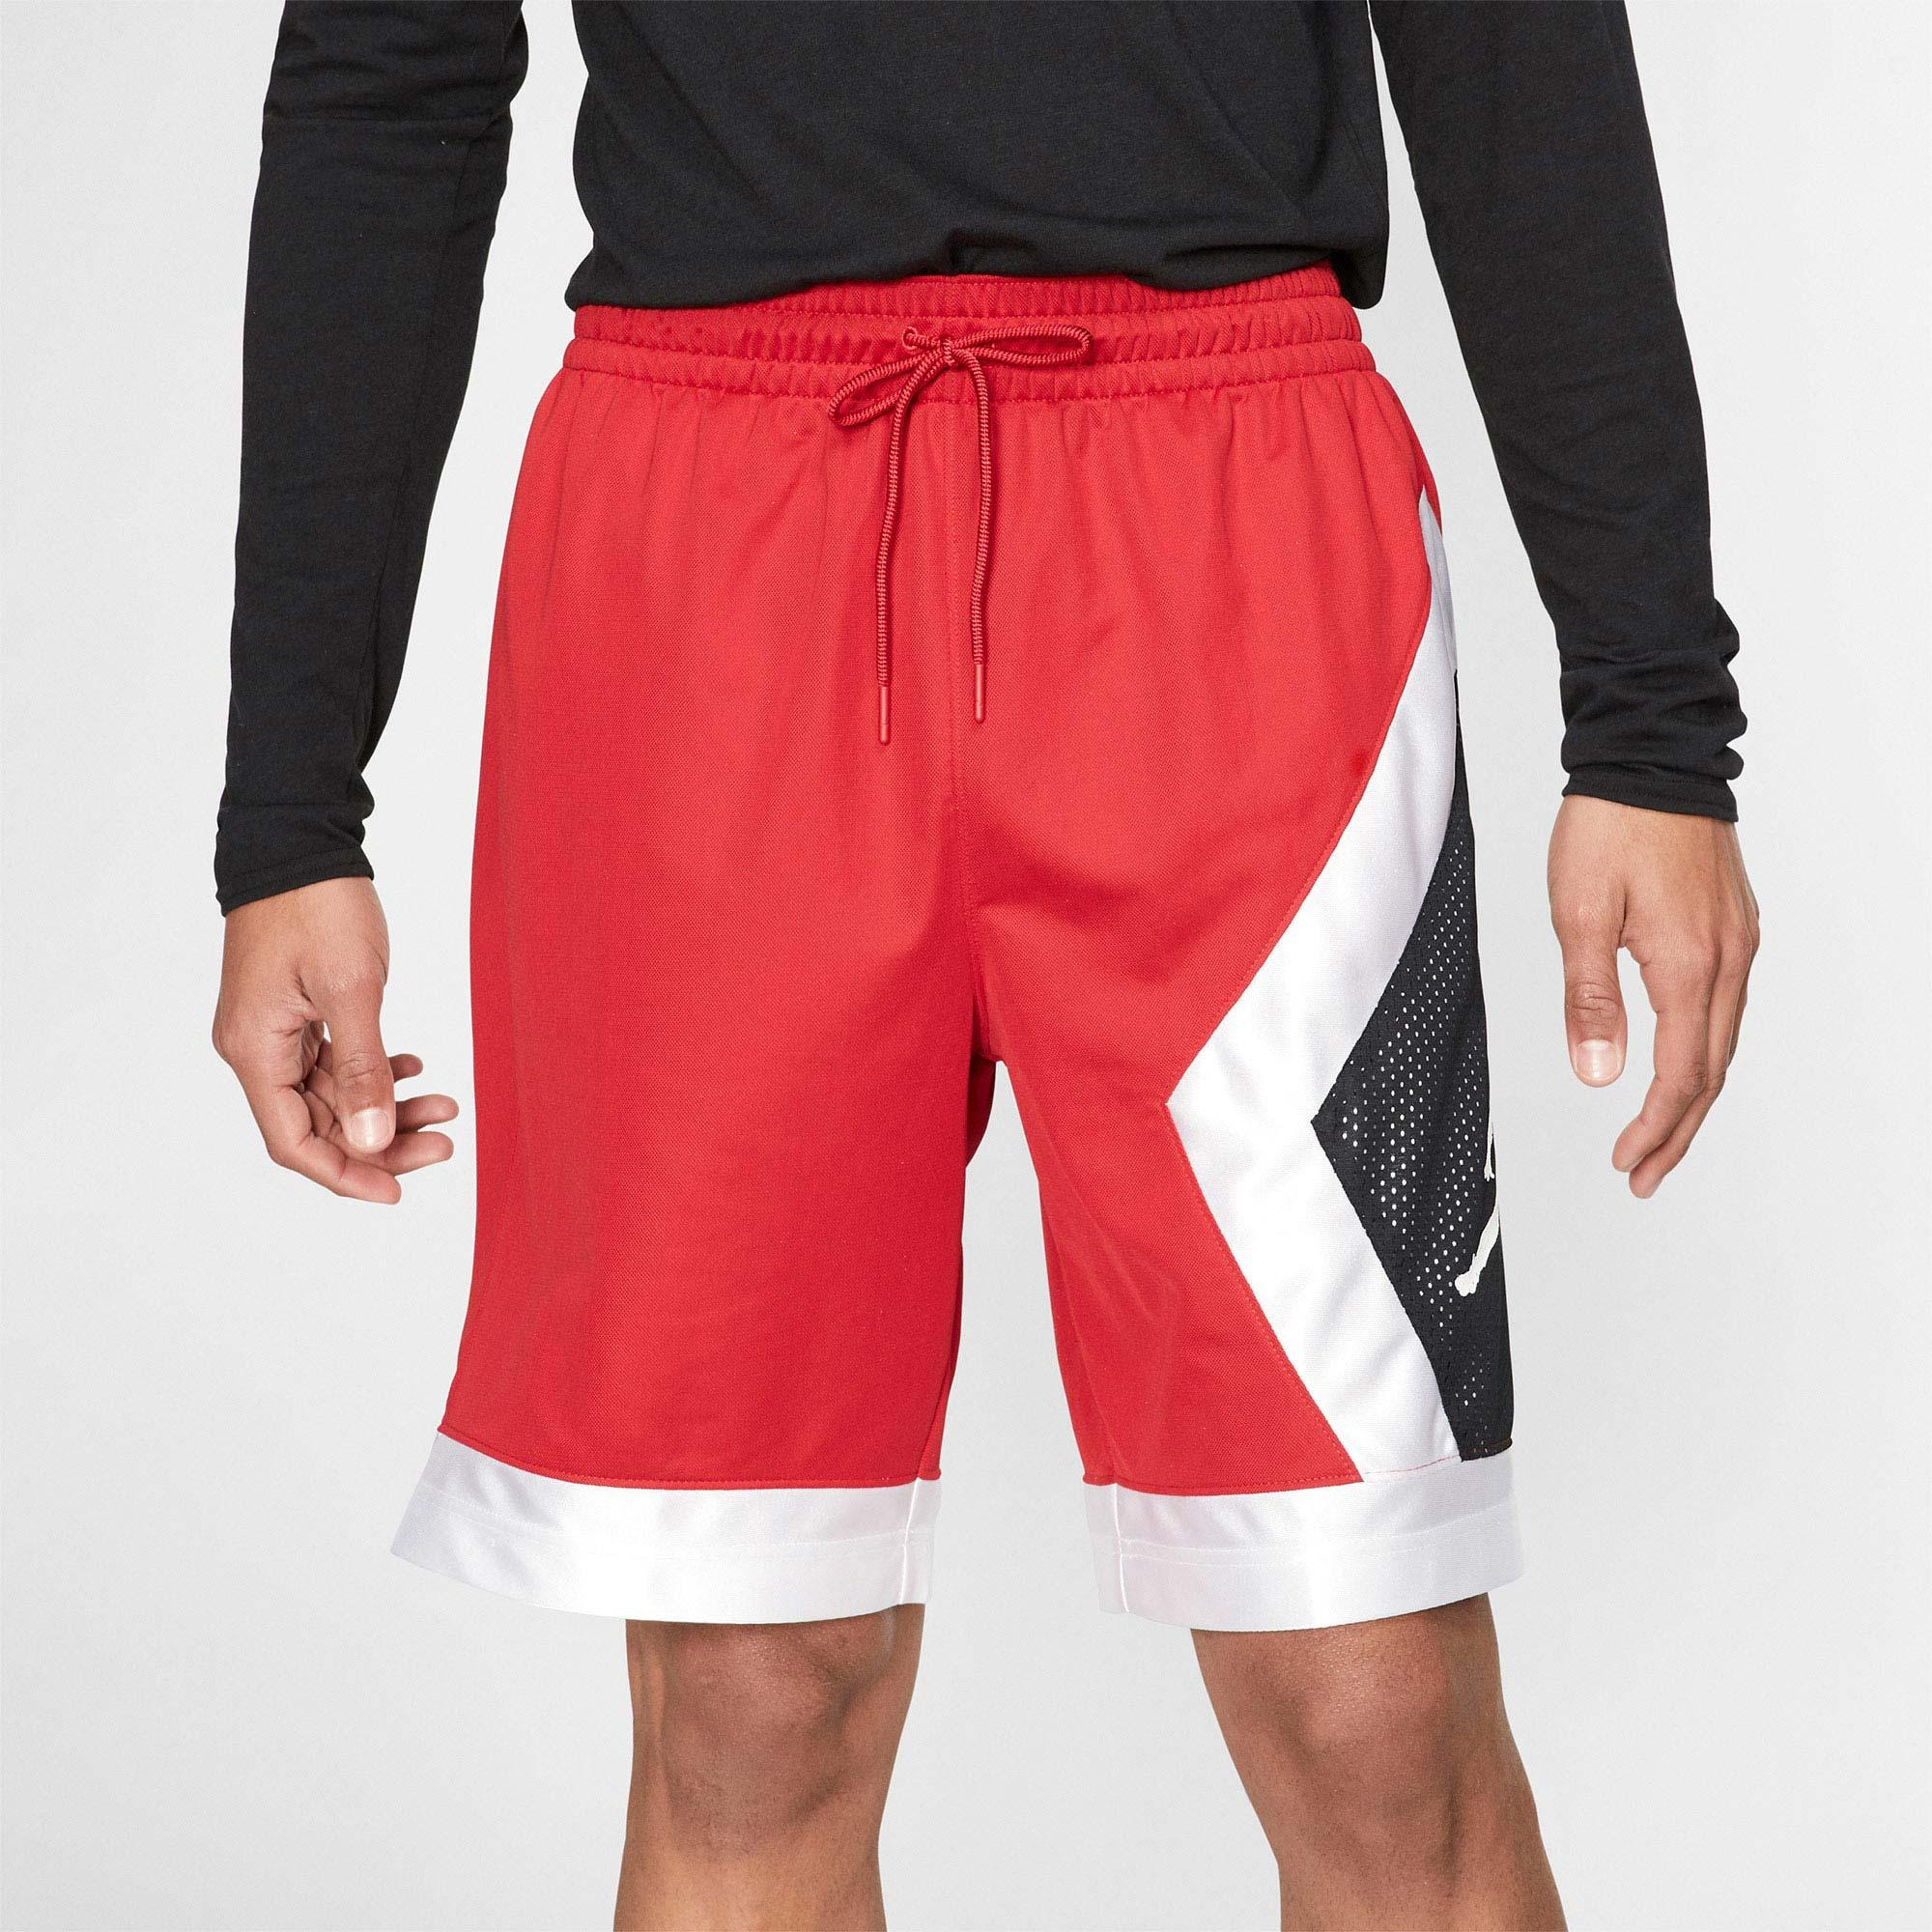 Nike Shorts Men's Trousers 2019 New Style Athletic Pants Leisure Shorts Breathable Shorts AV3207 010